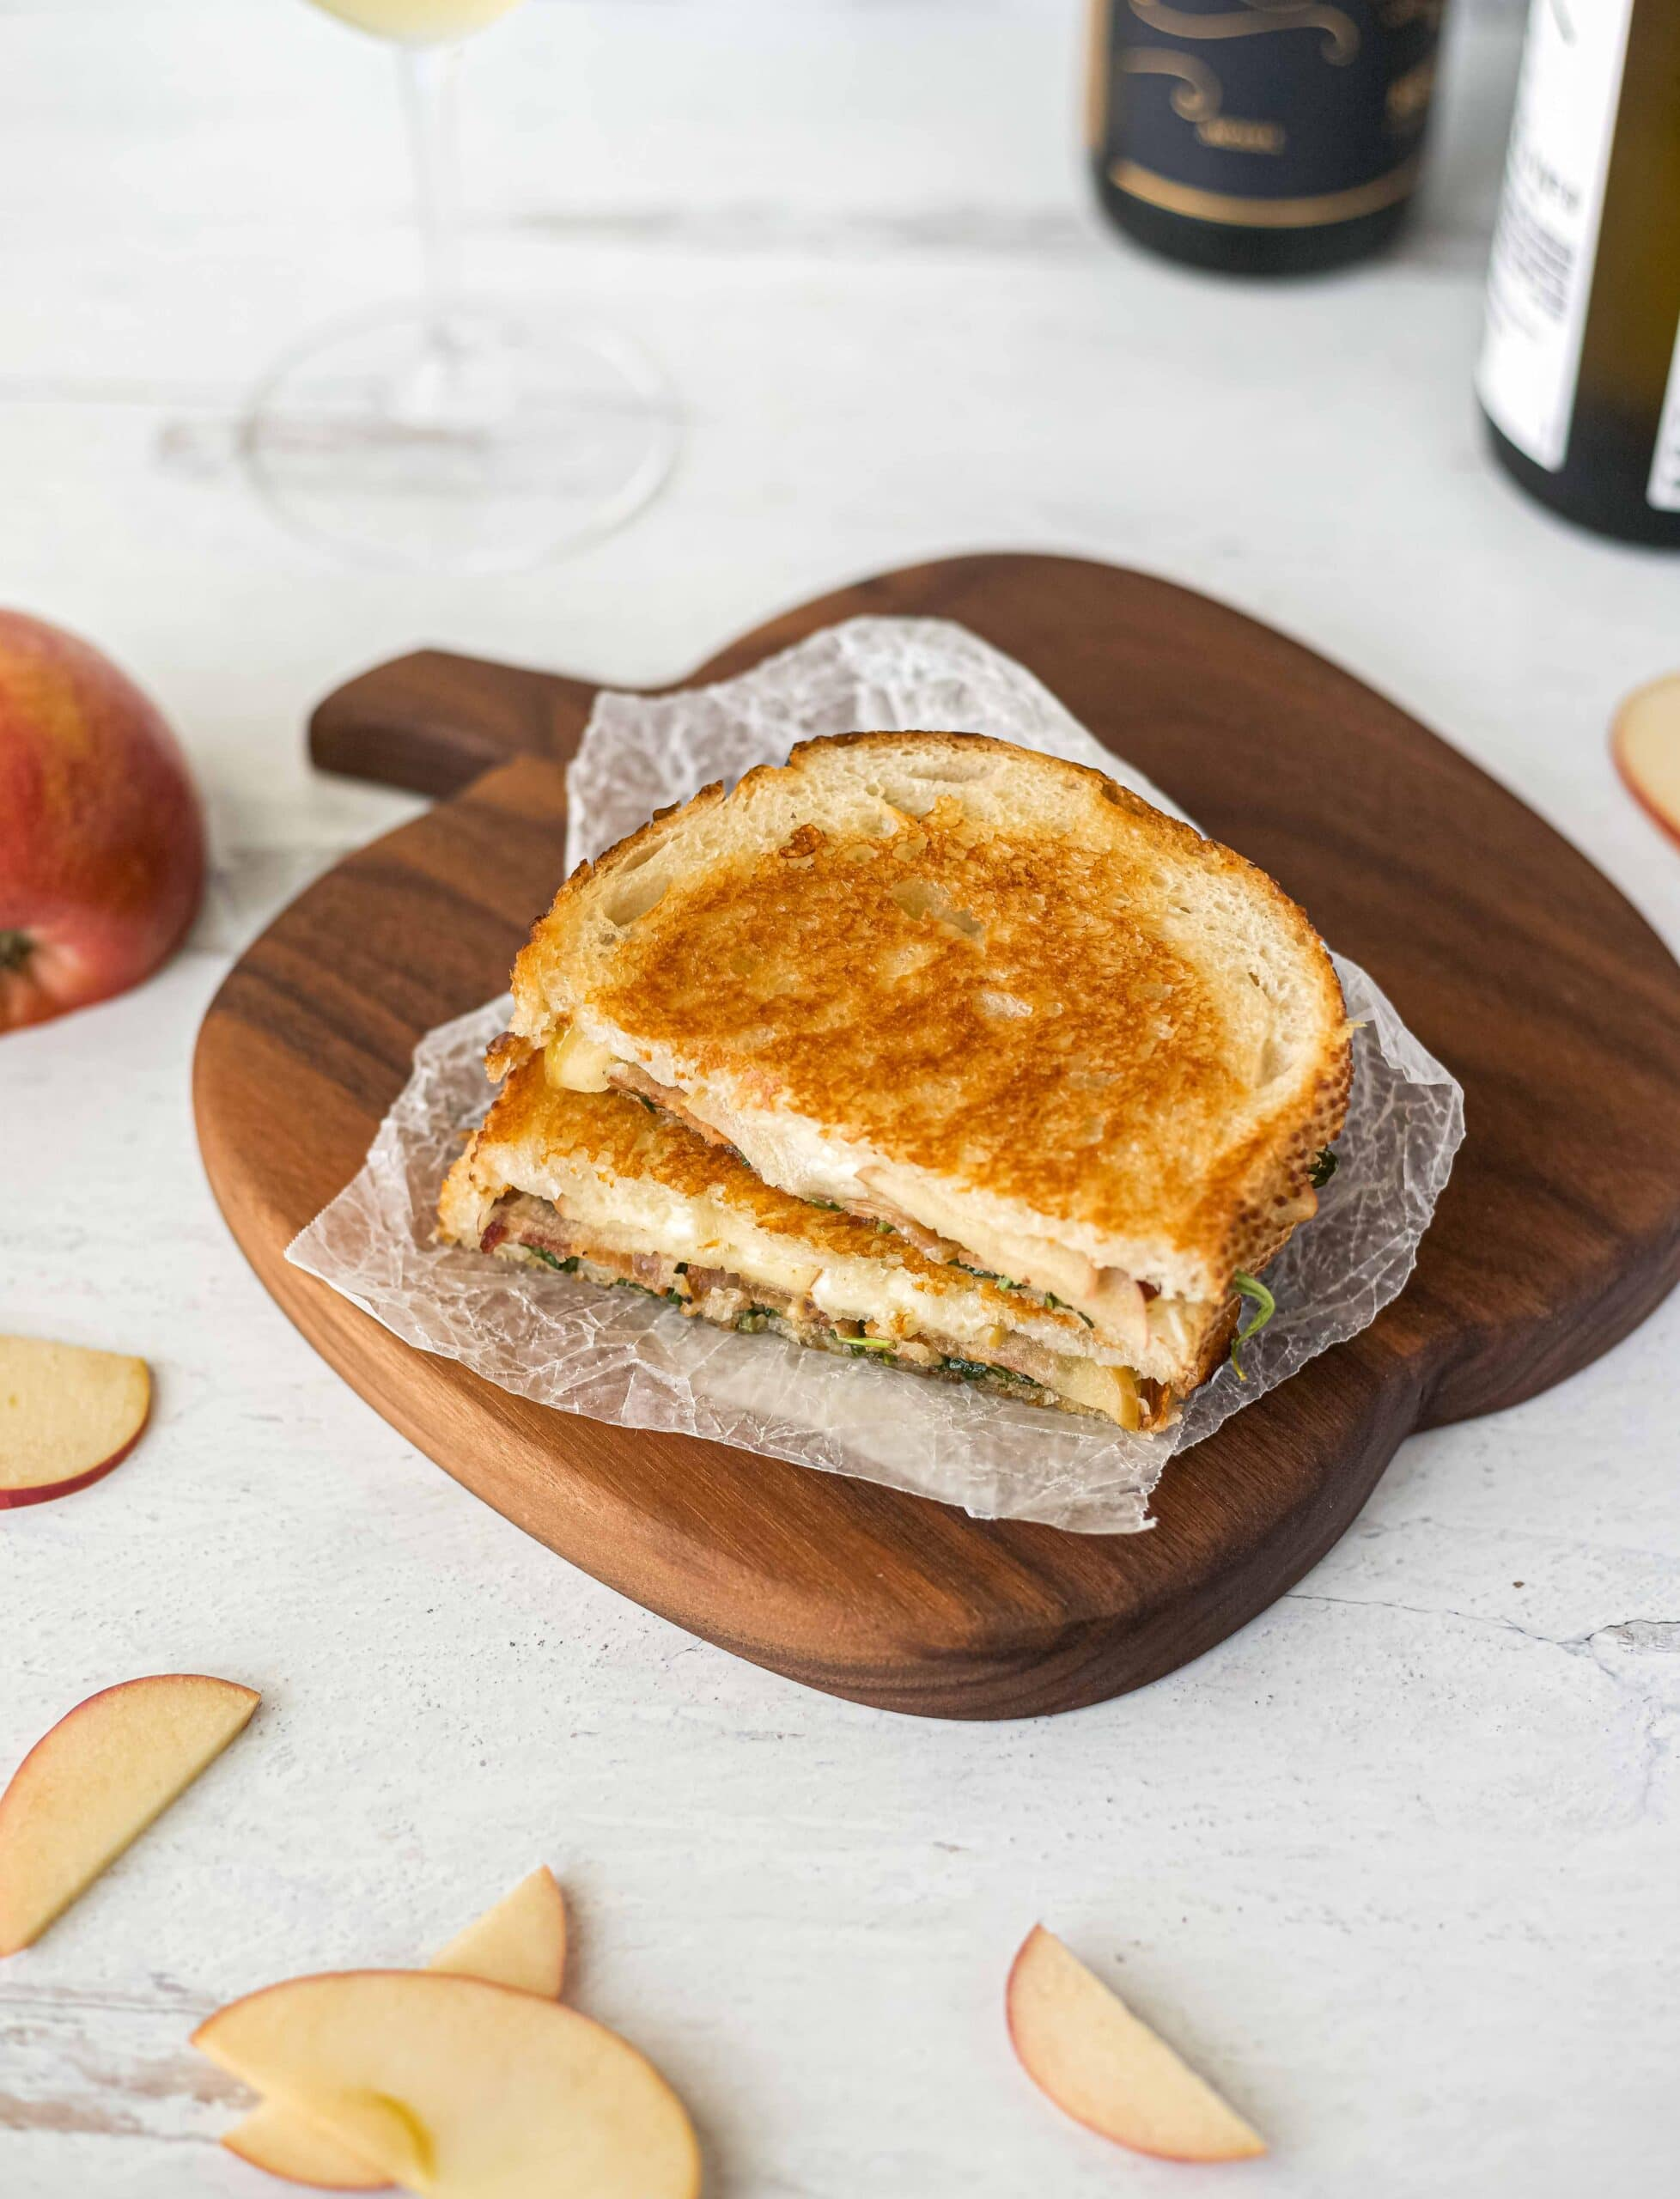 A grilled cheese sandwich on an apple shaped cutting board with a bottle of wine in the background